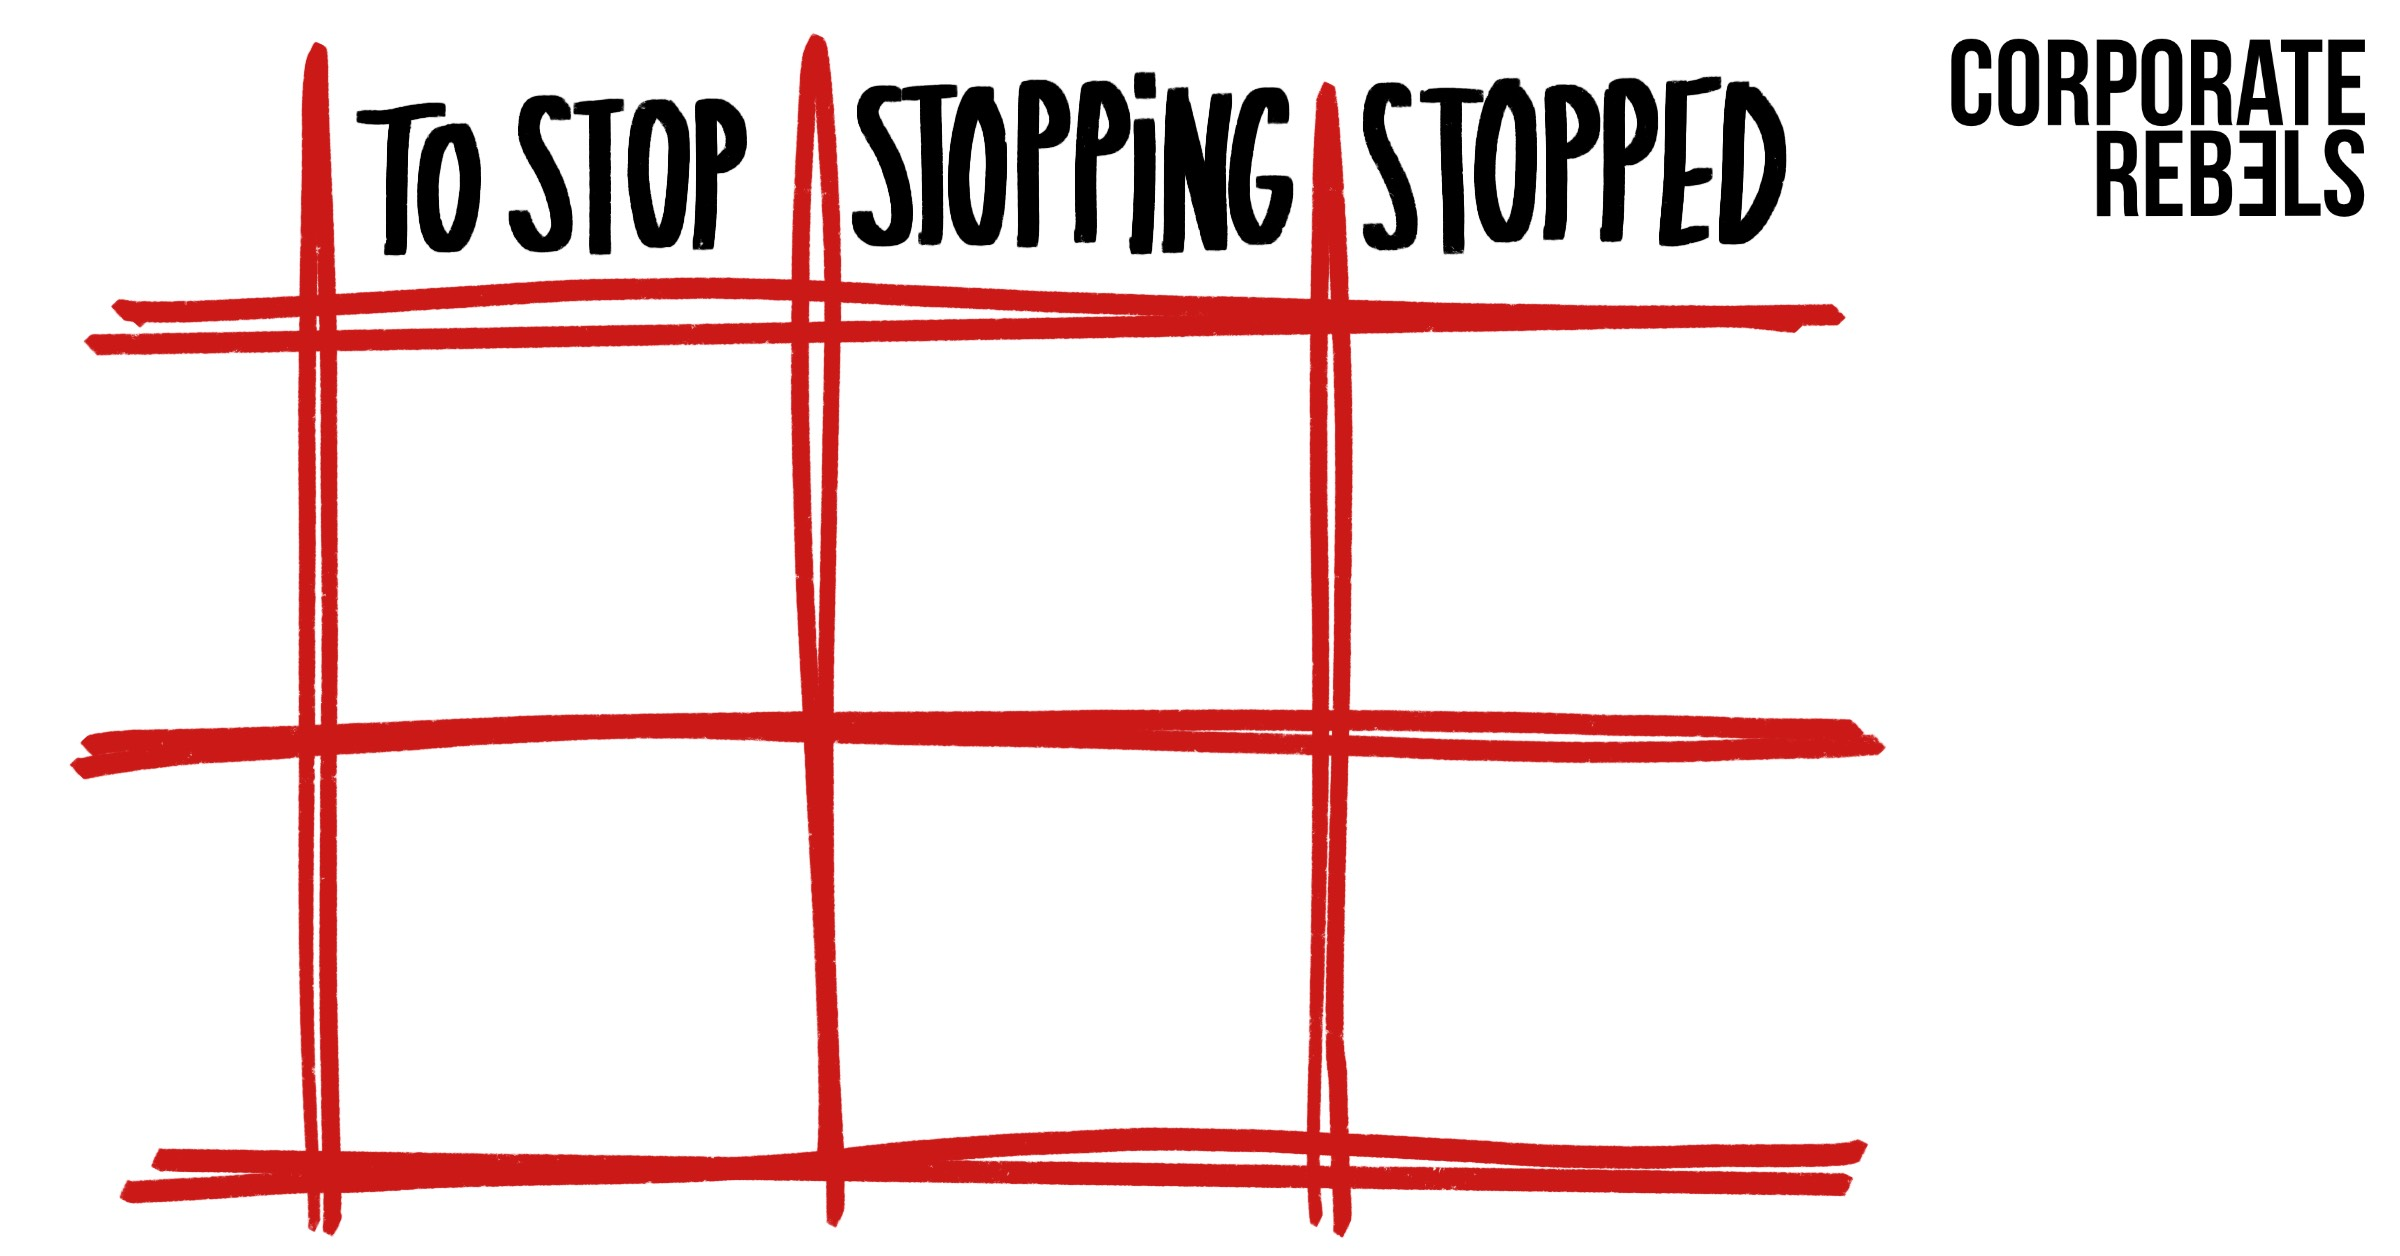 STOP STOPPING STOPPED